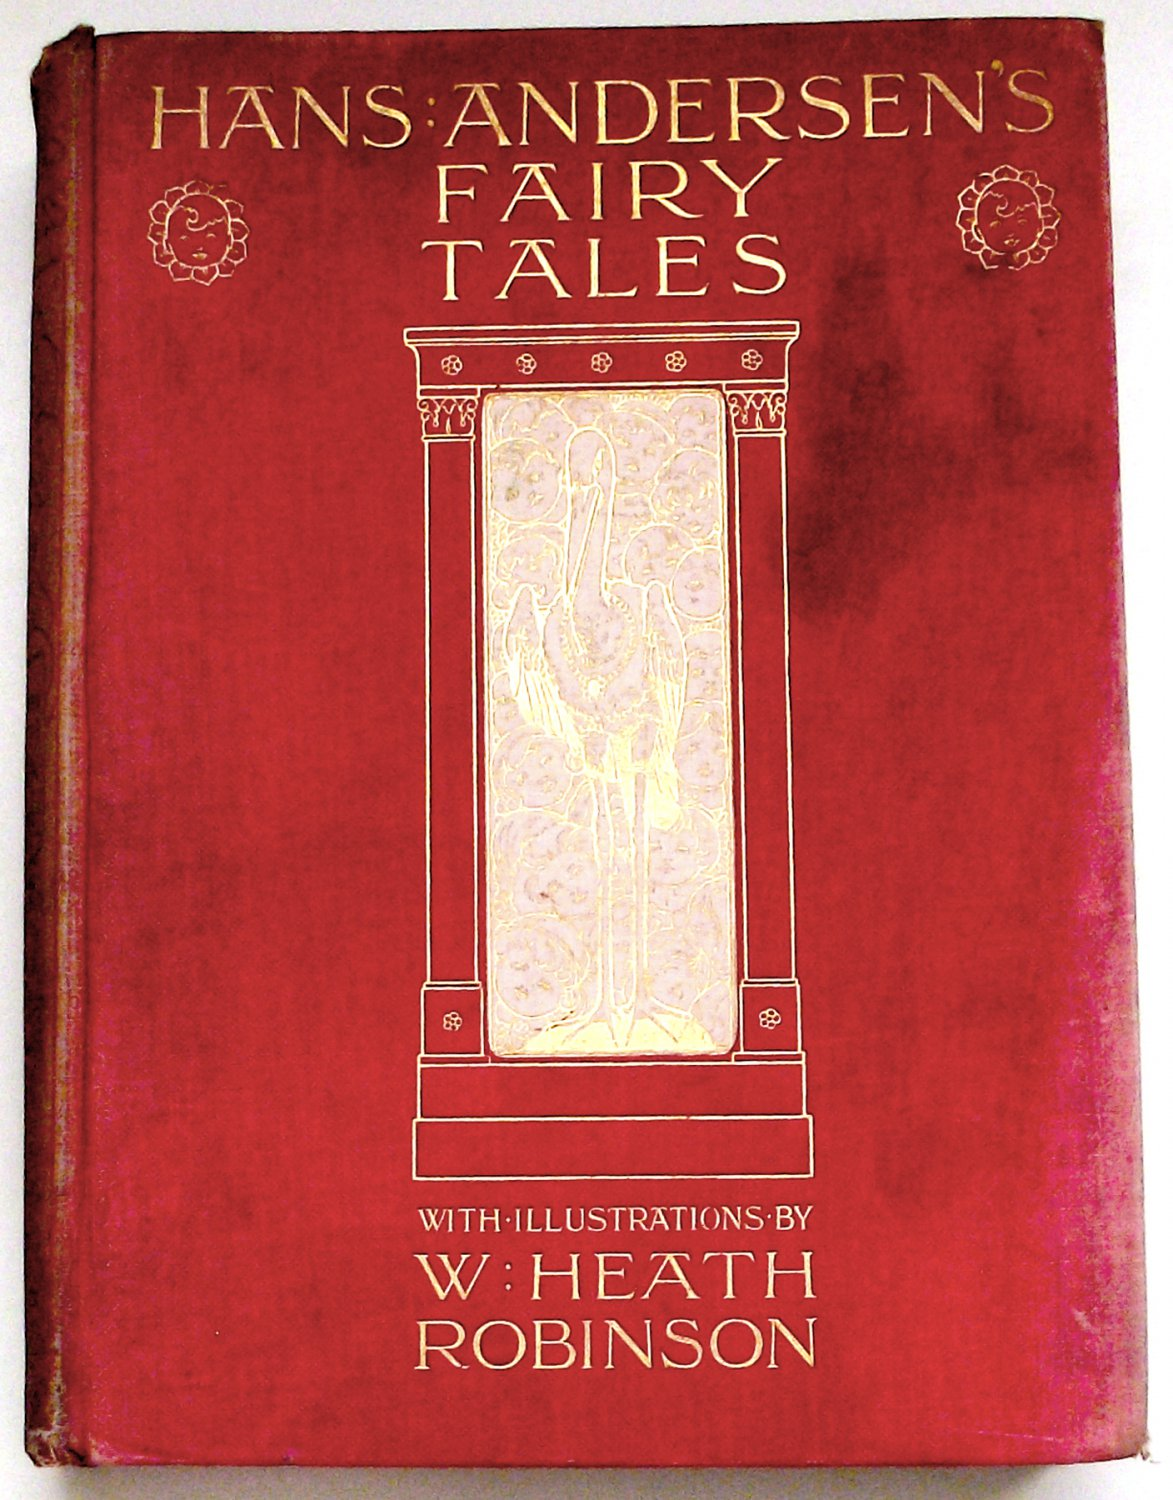 Hans Andersen�s Fairy Tales Illustrated by William Heath Robinson circa 1927